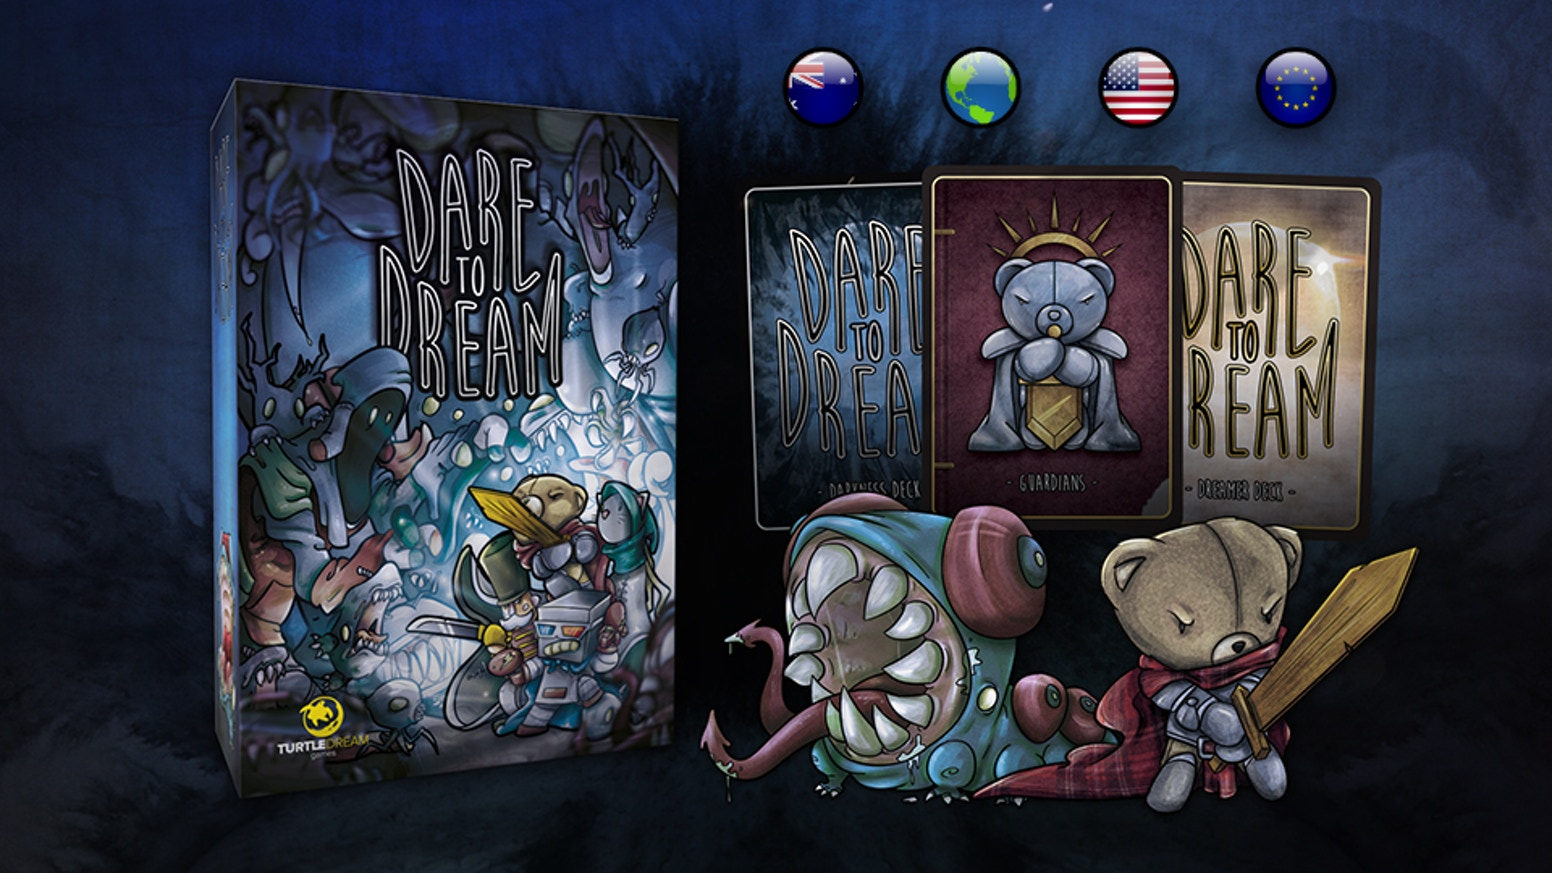 Team up to stave off The Darkness, or send waves of monsters at The Dreamers and let Darkness reign eternal! Card game for 2-4 players